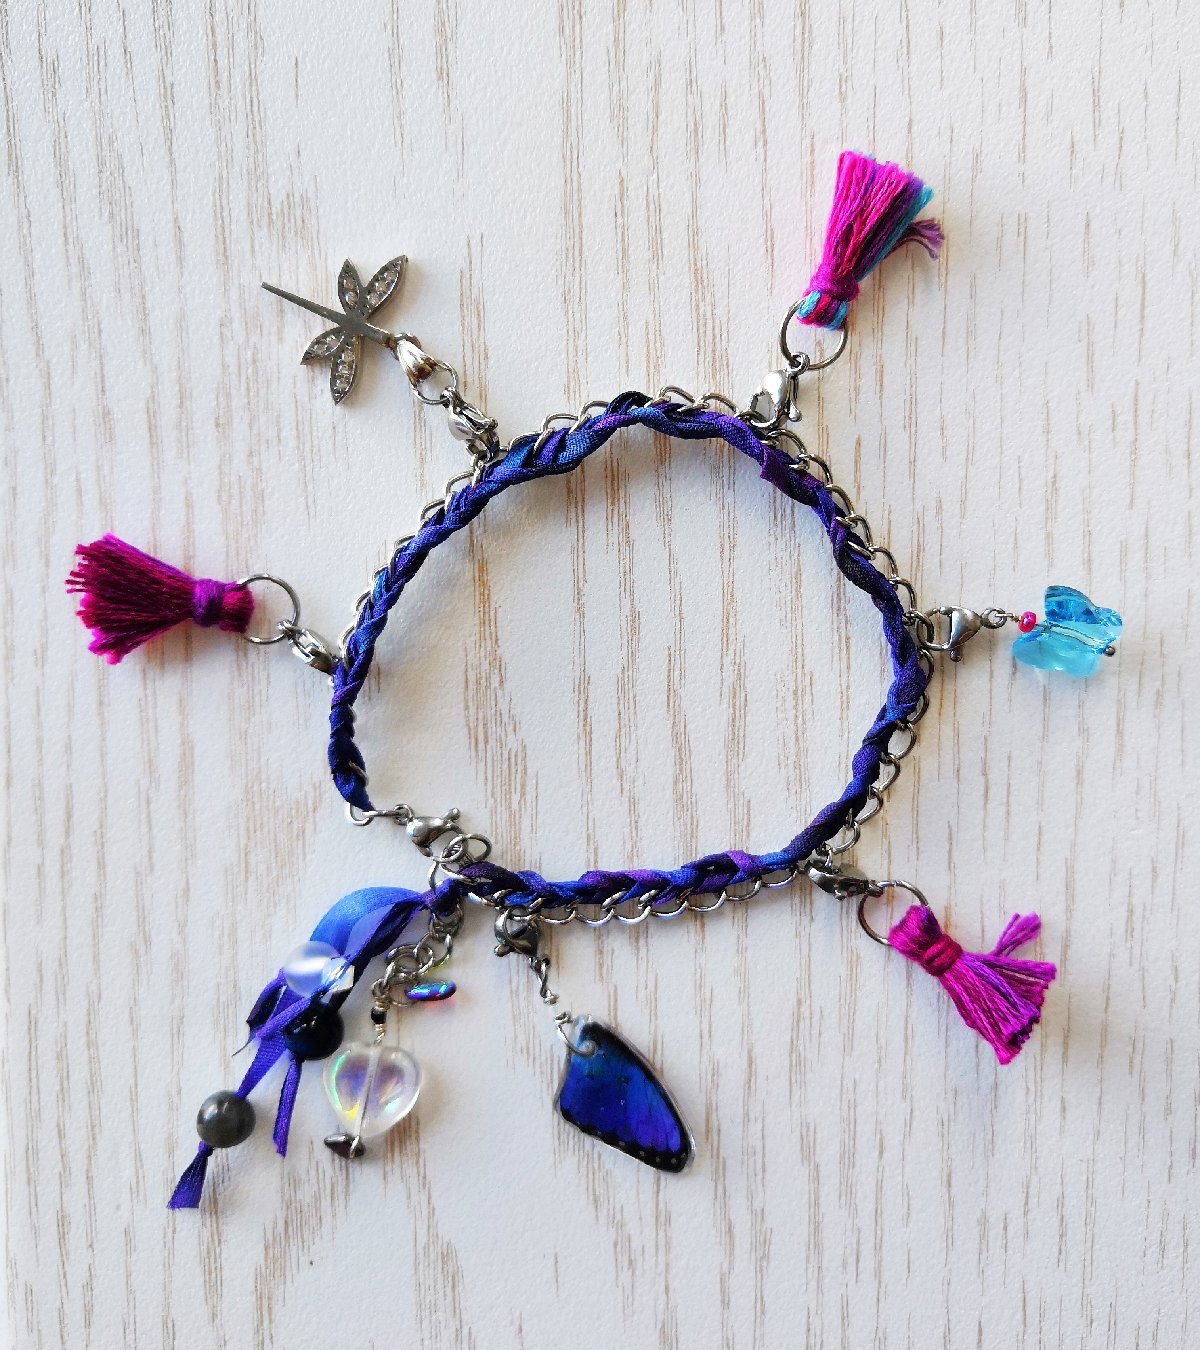 charm bracelet and charms